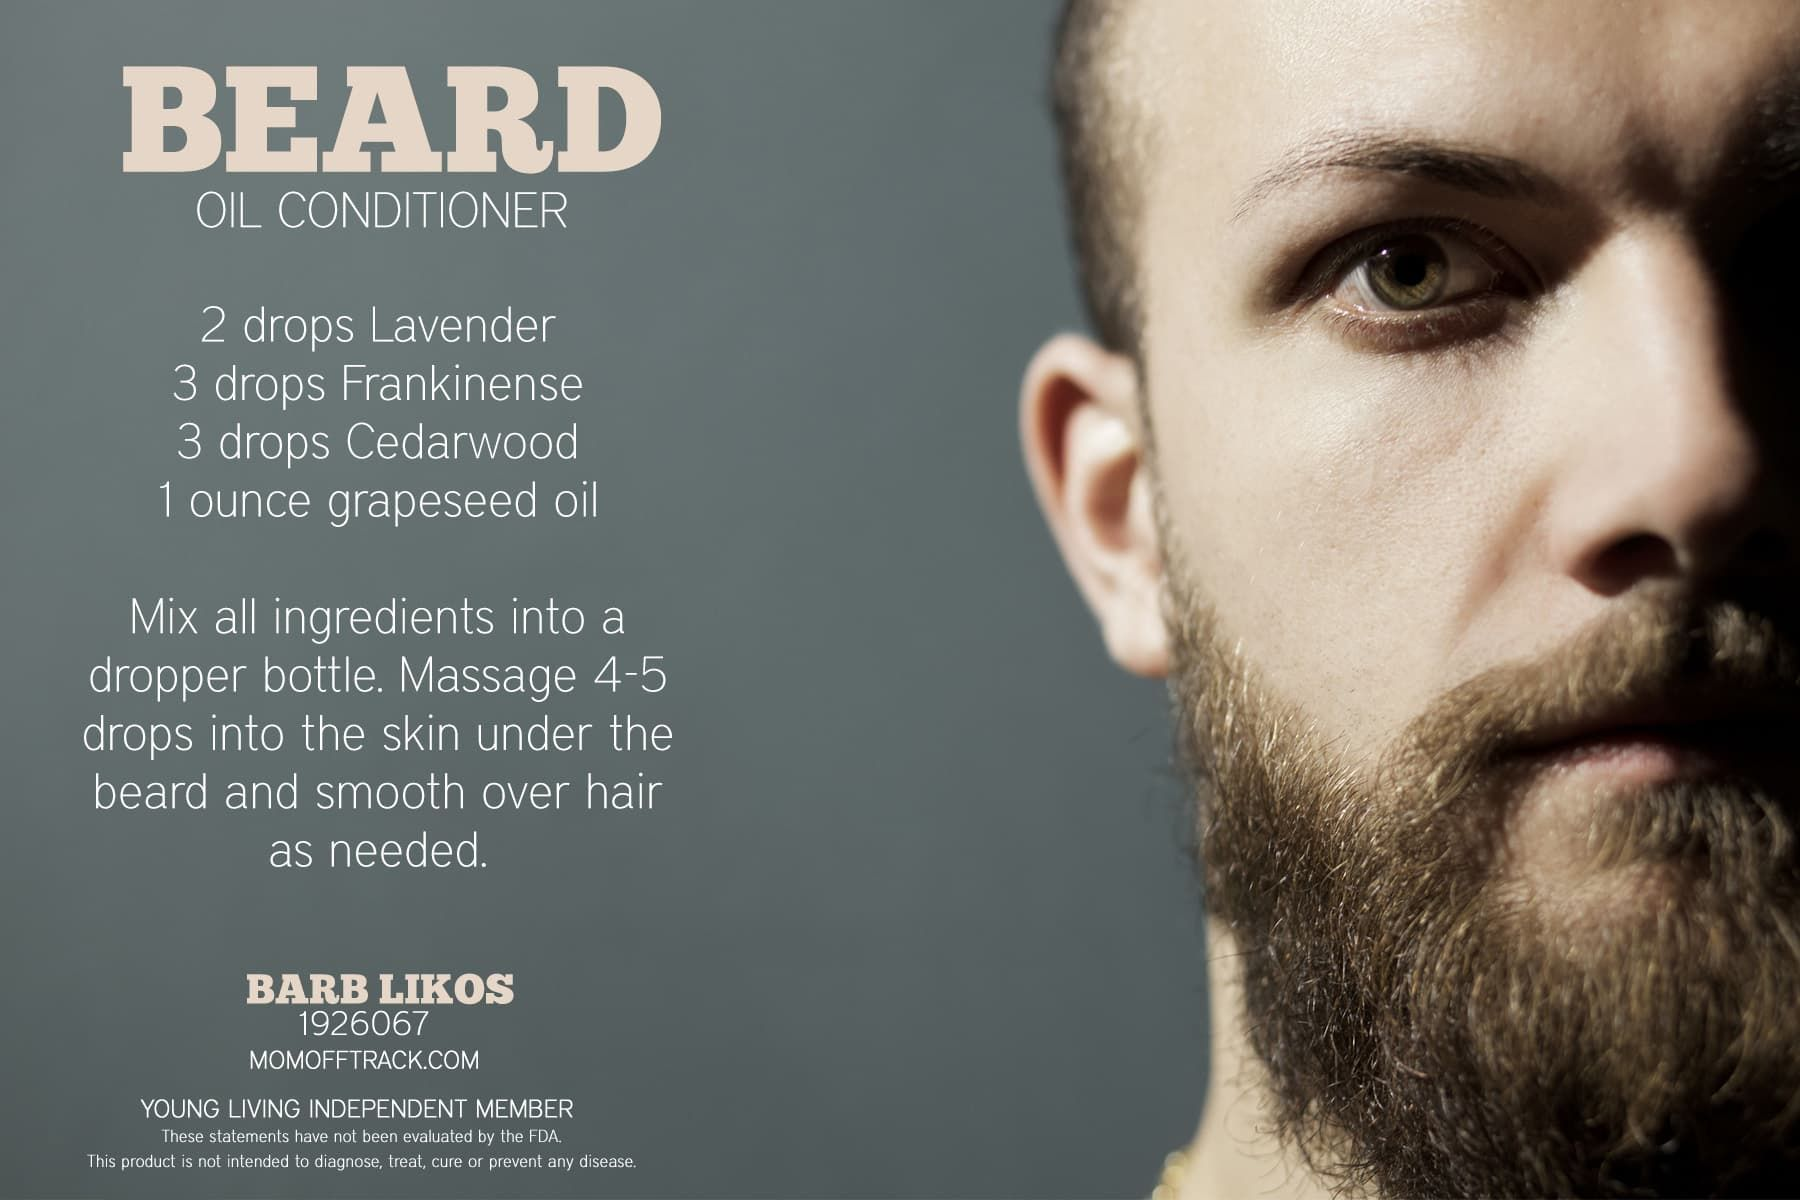 beard wash and conditioner photo - 1